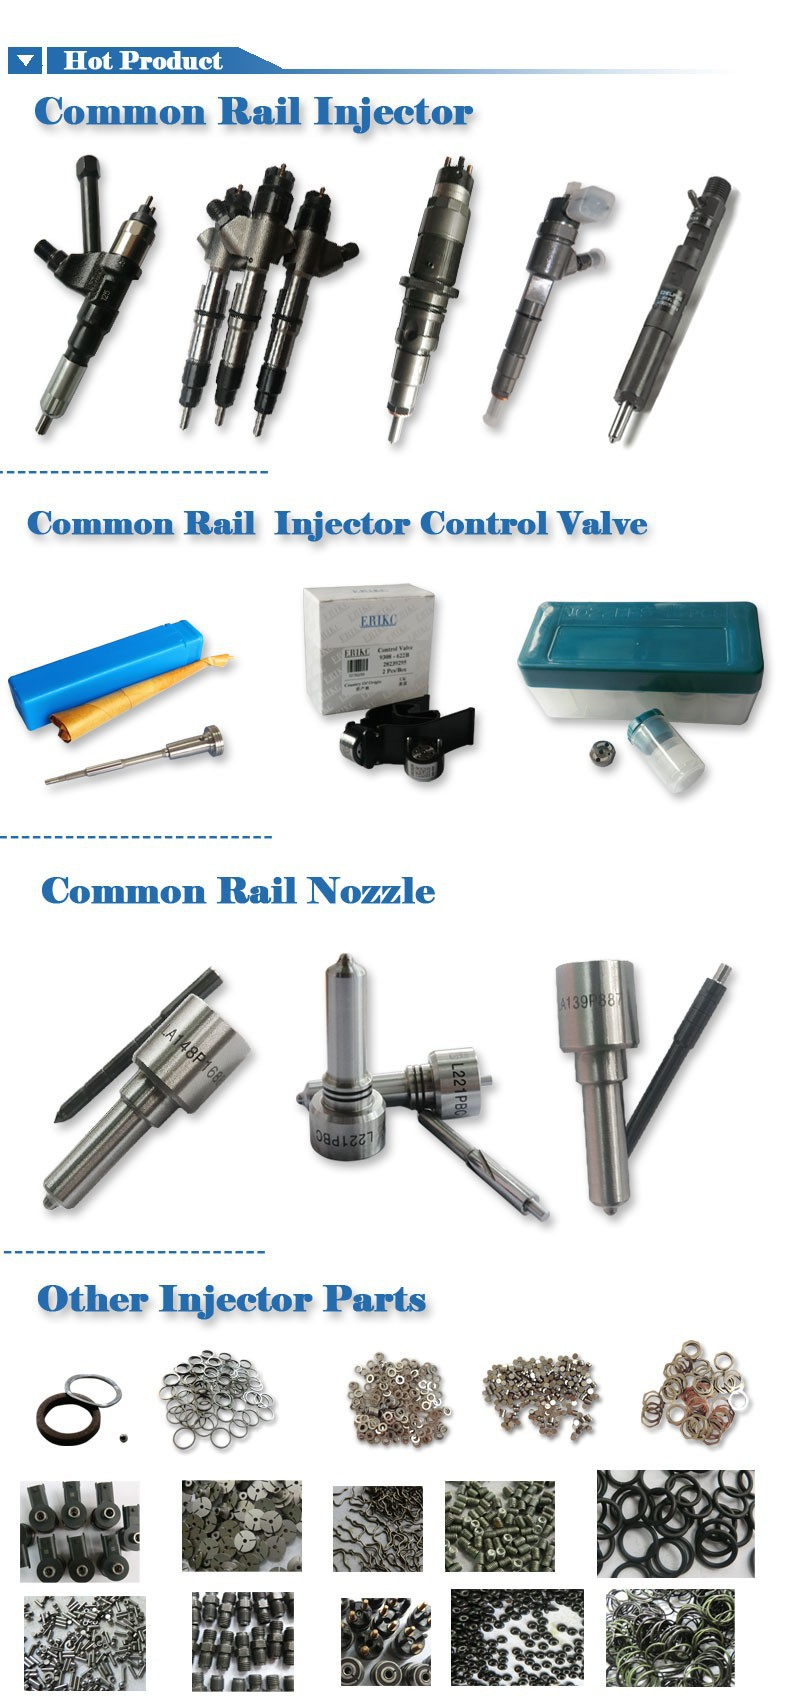 diesel injection repair equipment and nozzle injector tool,fuel common rail injector repair and disassemble tools